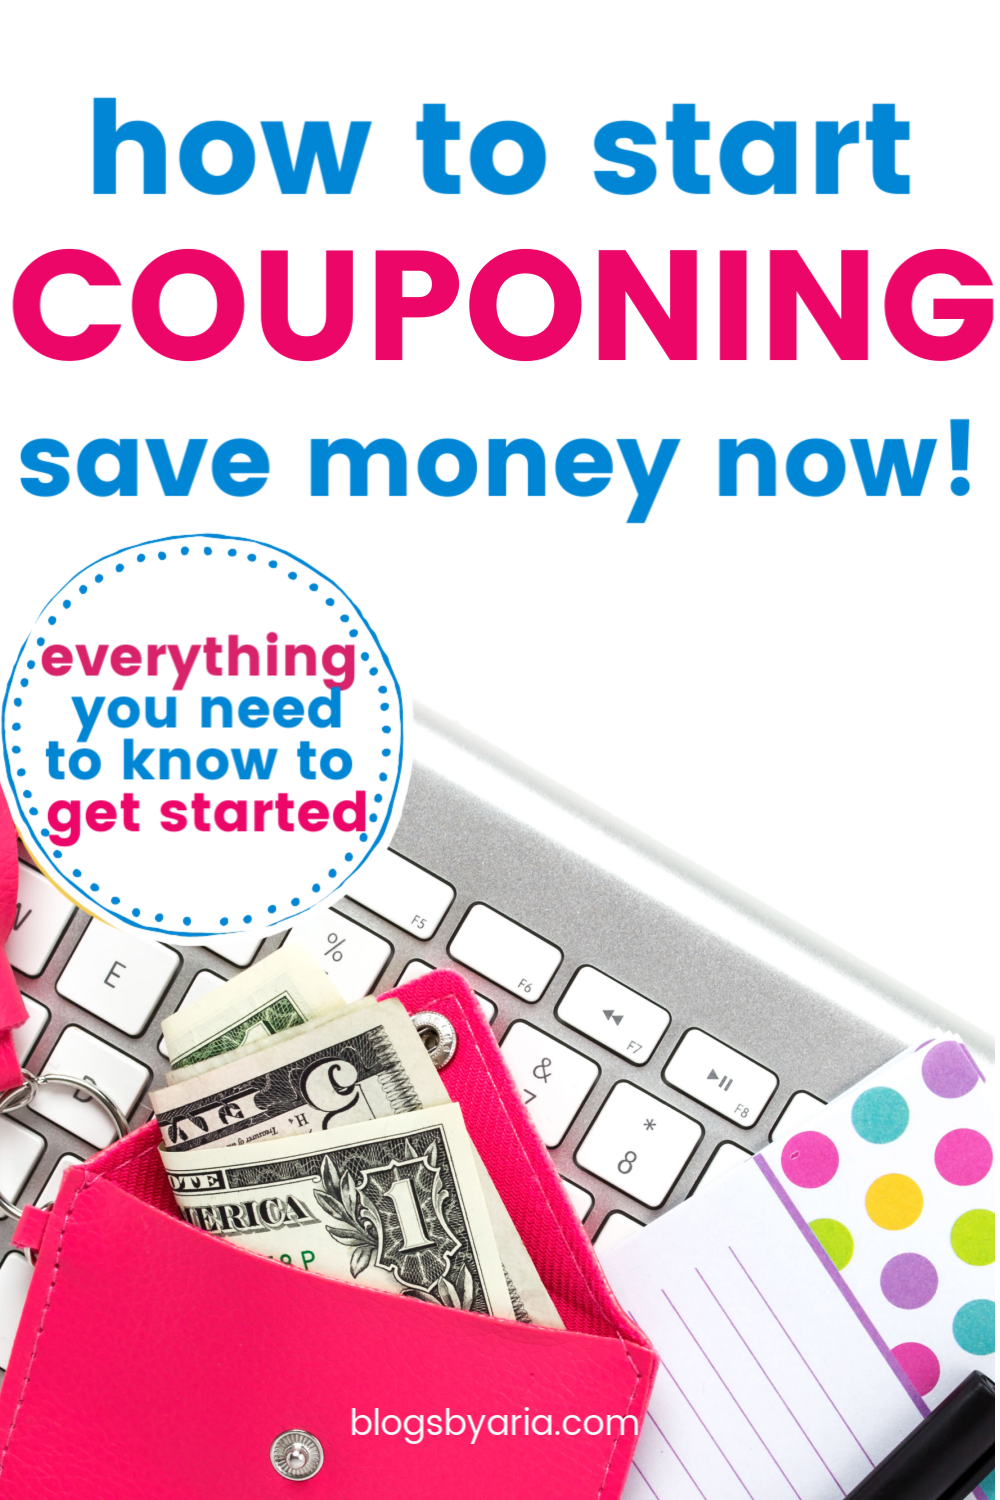 how to start couponing and save money now